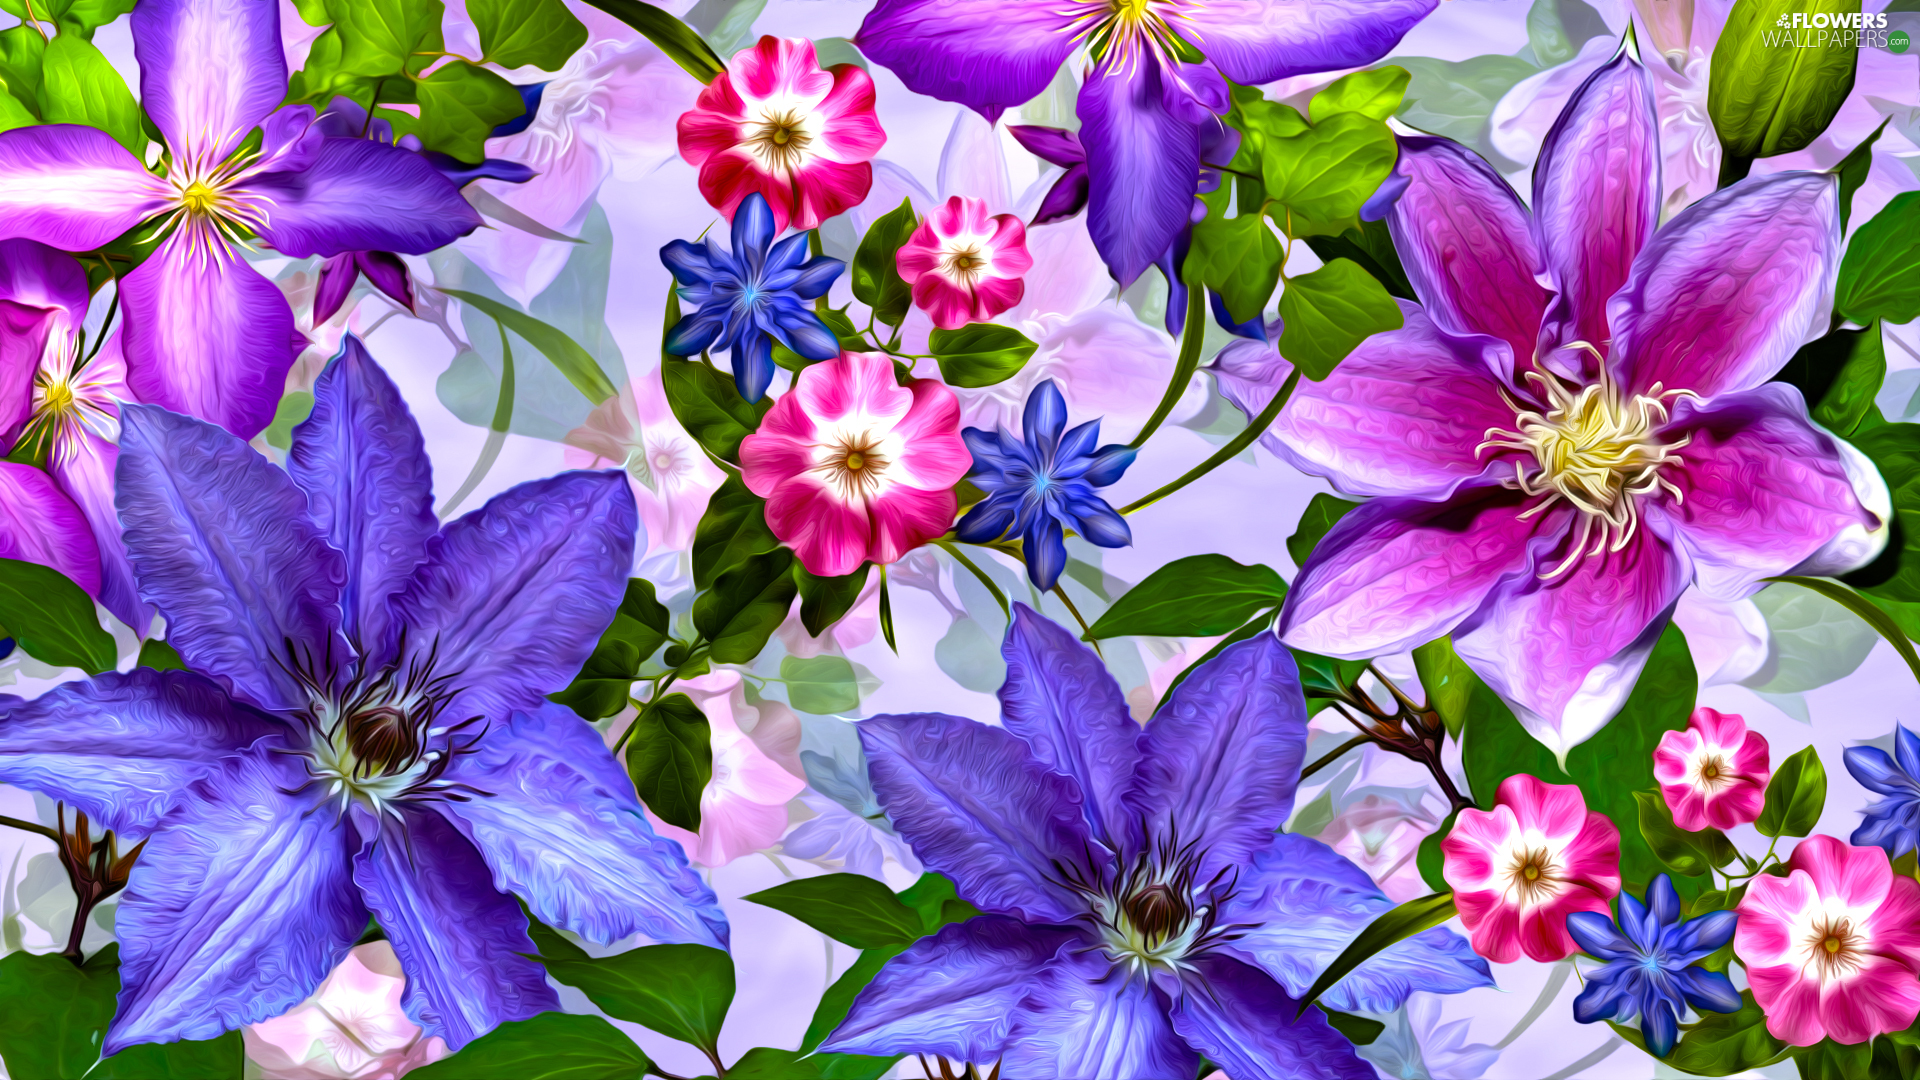 Flowers, Clematis, graphics, color